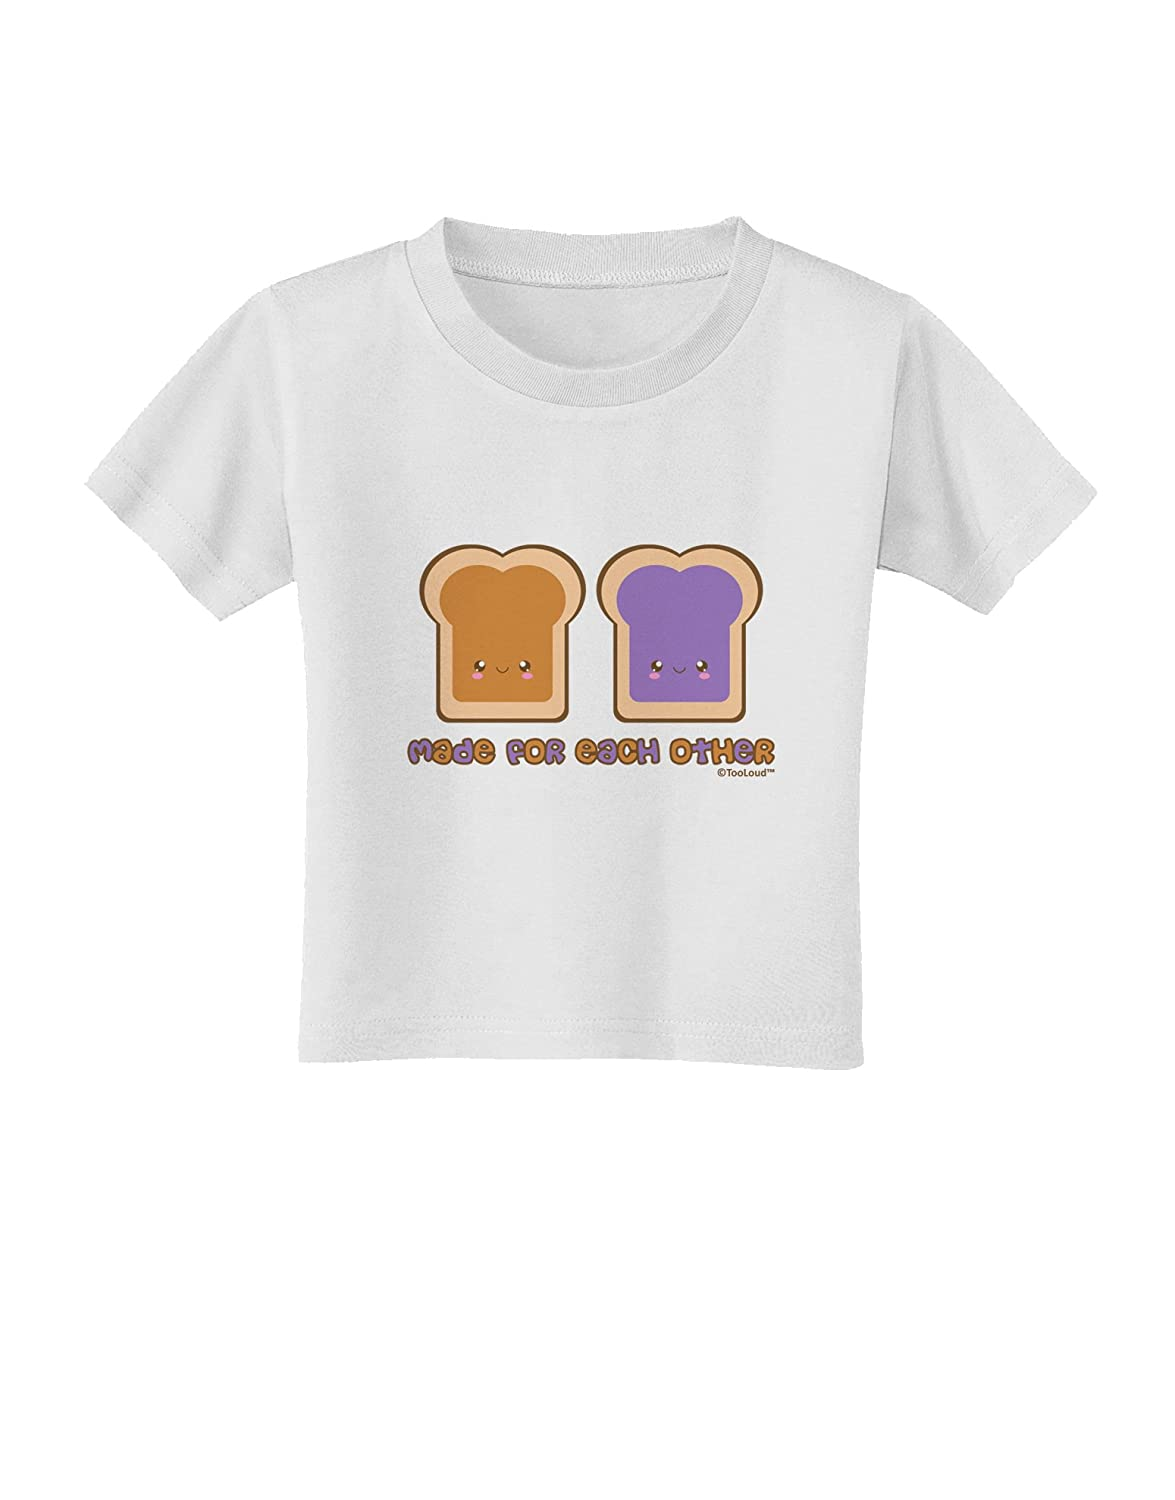 TooLoud Cute PB and J Design Made for Each Other Toddler T-Shirt